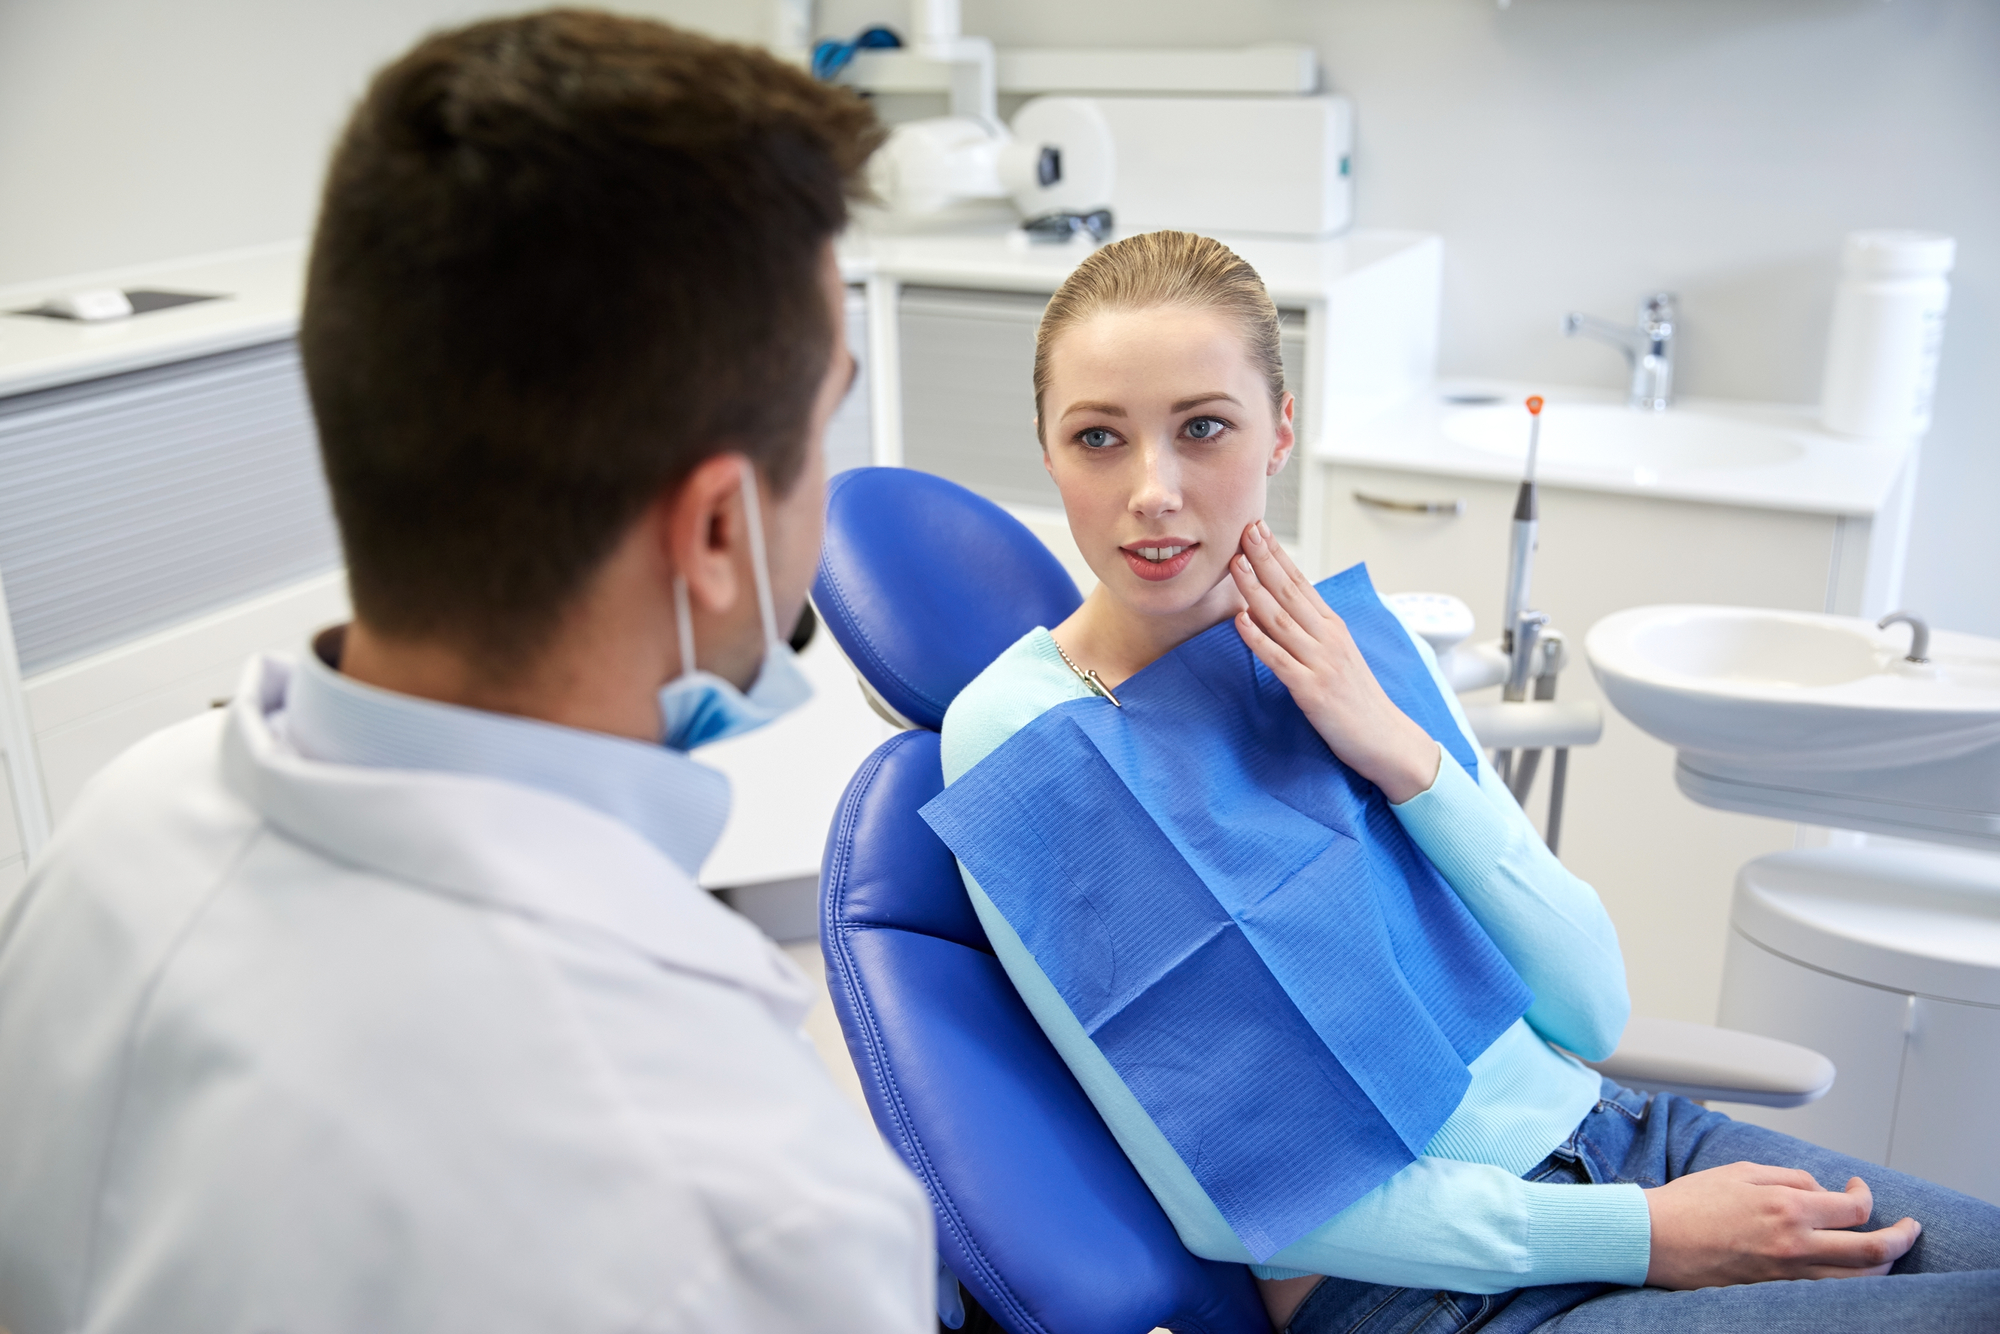 who offers the best wisdom teeth aventura?